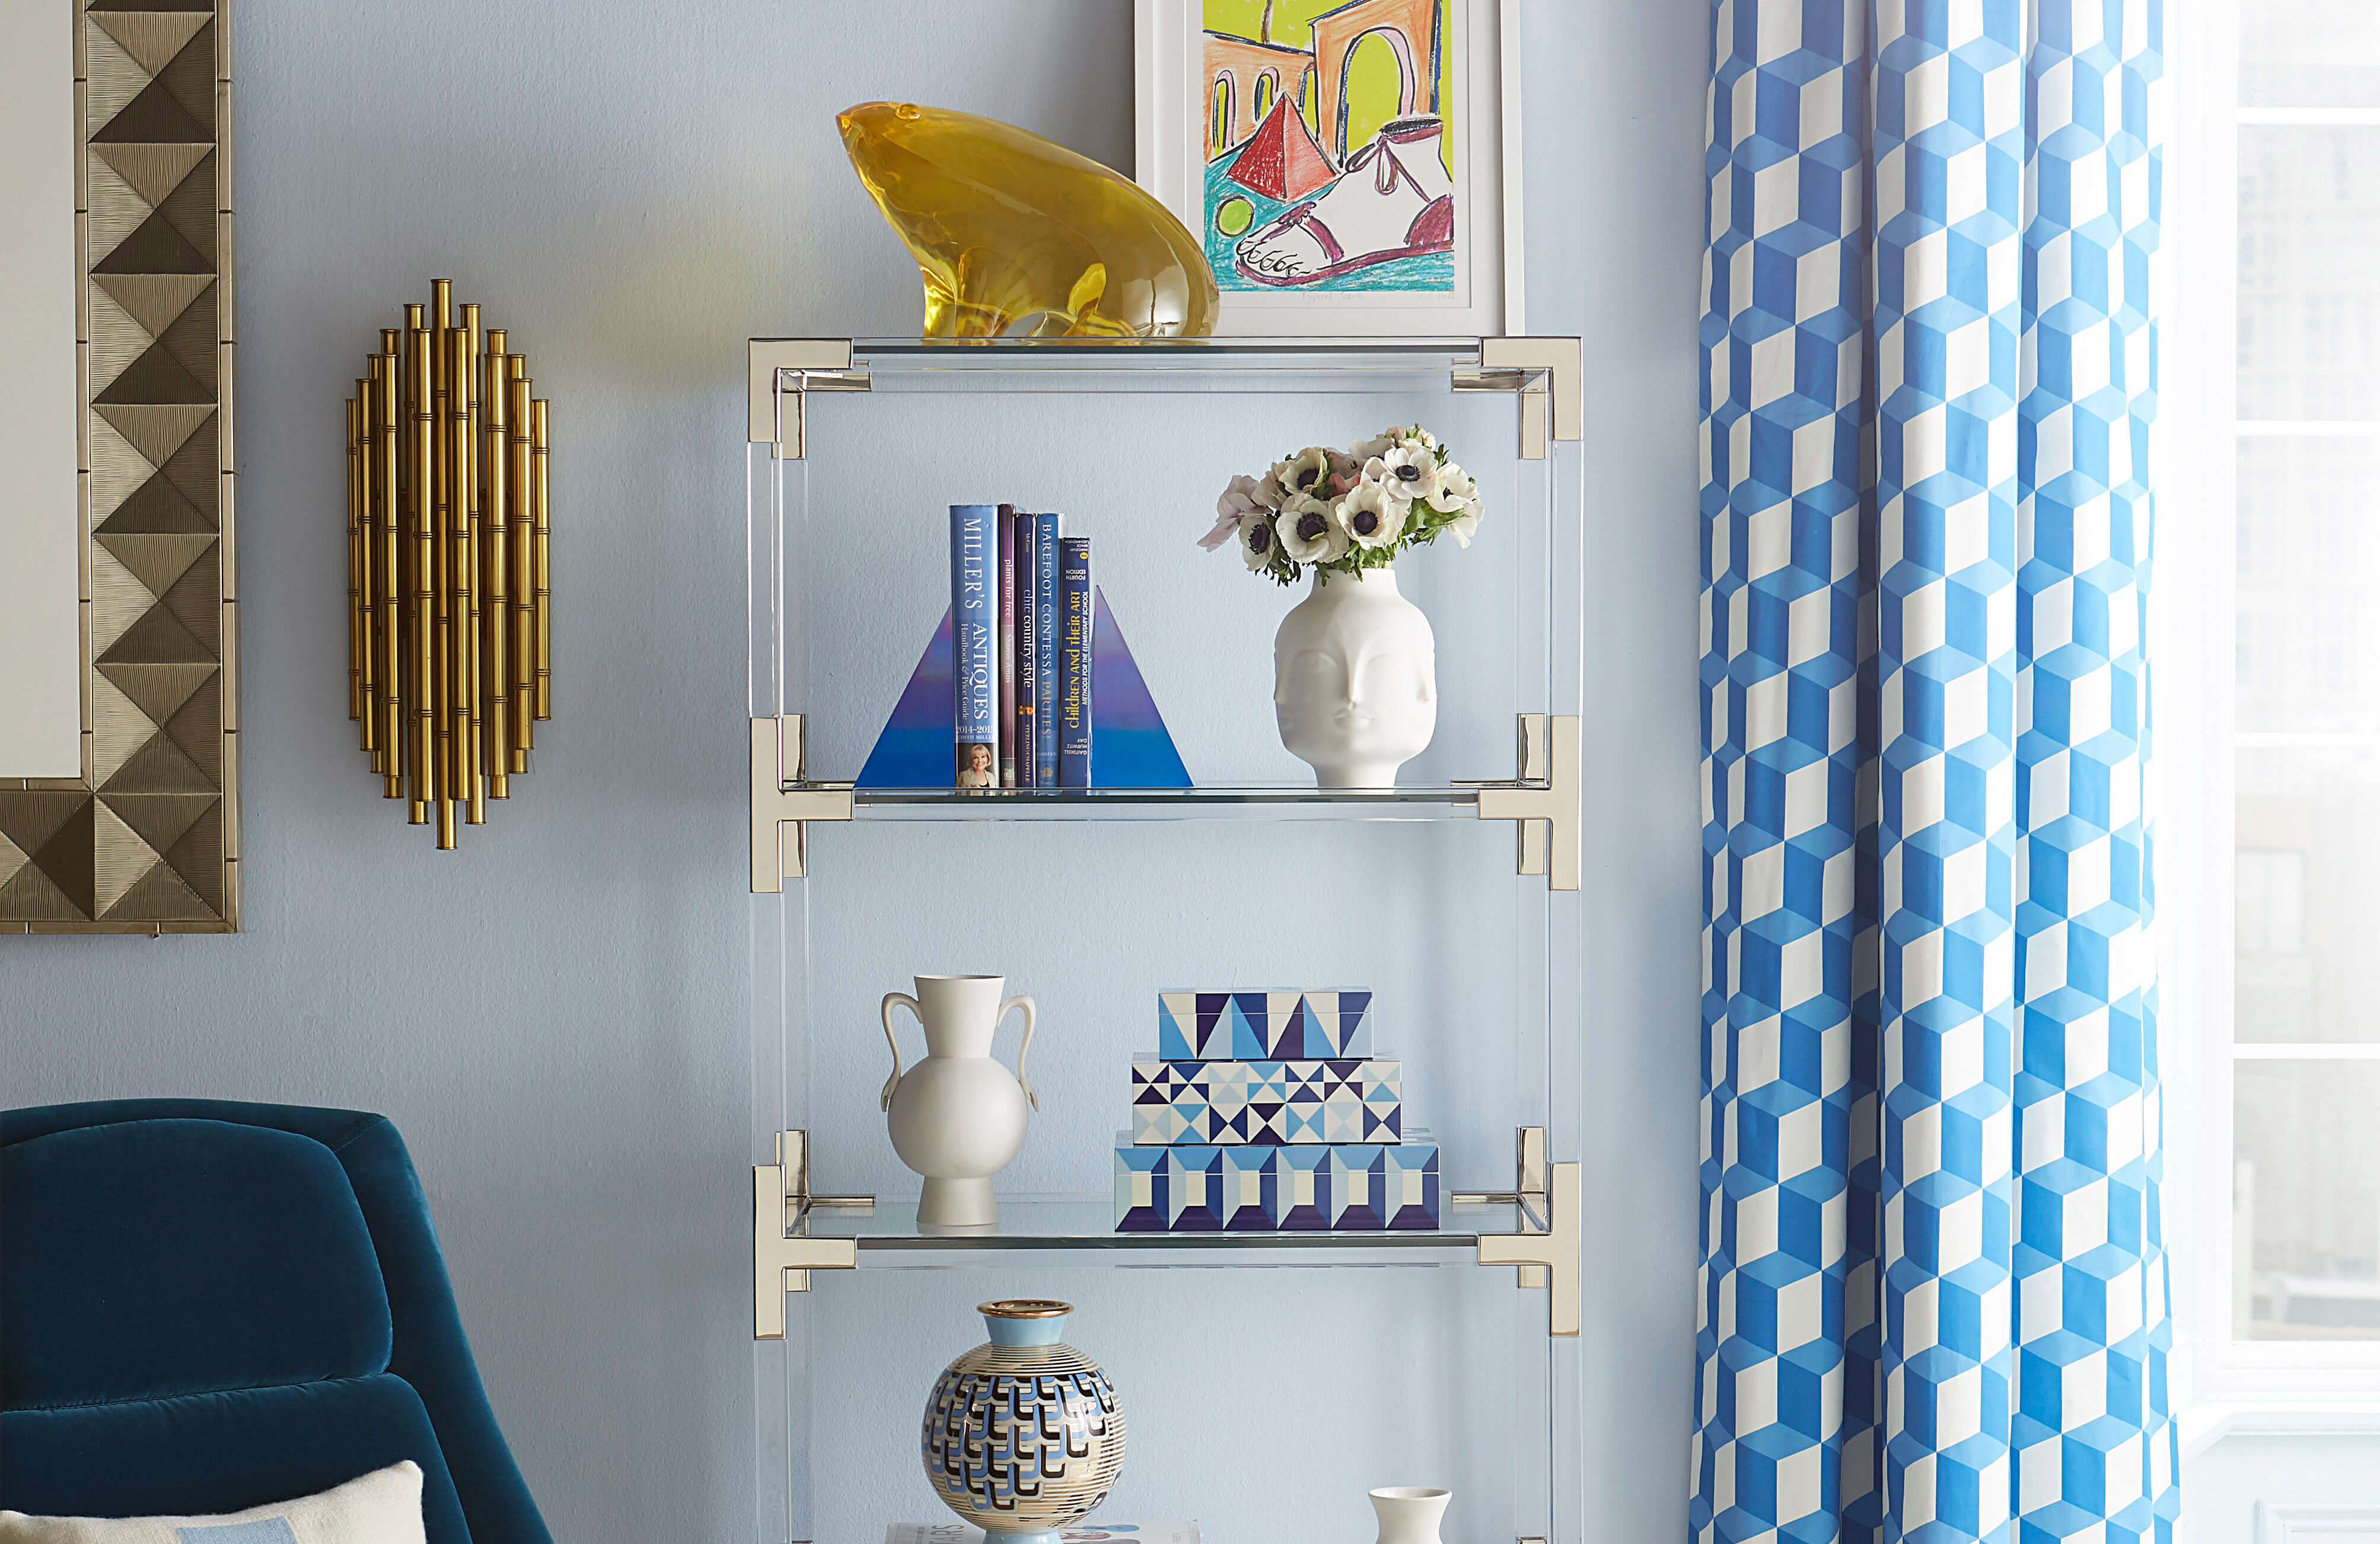 JONATHAN ADLER MEURICE WALL SCONCE by Robert Abbey